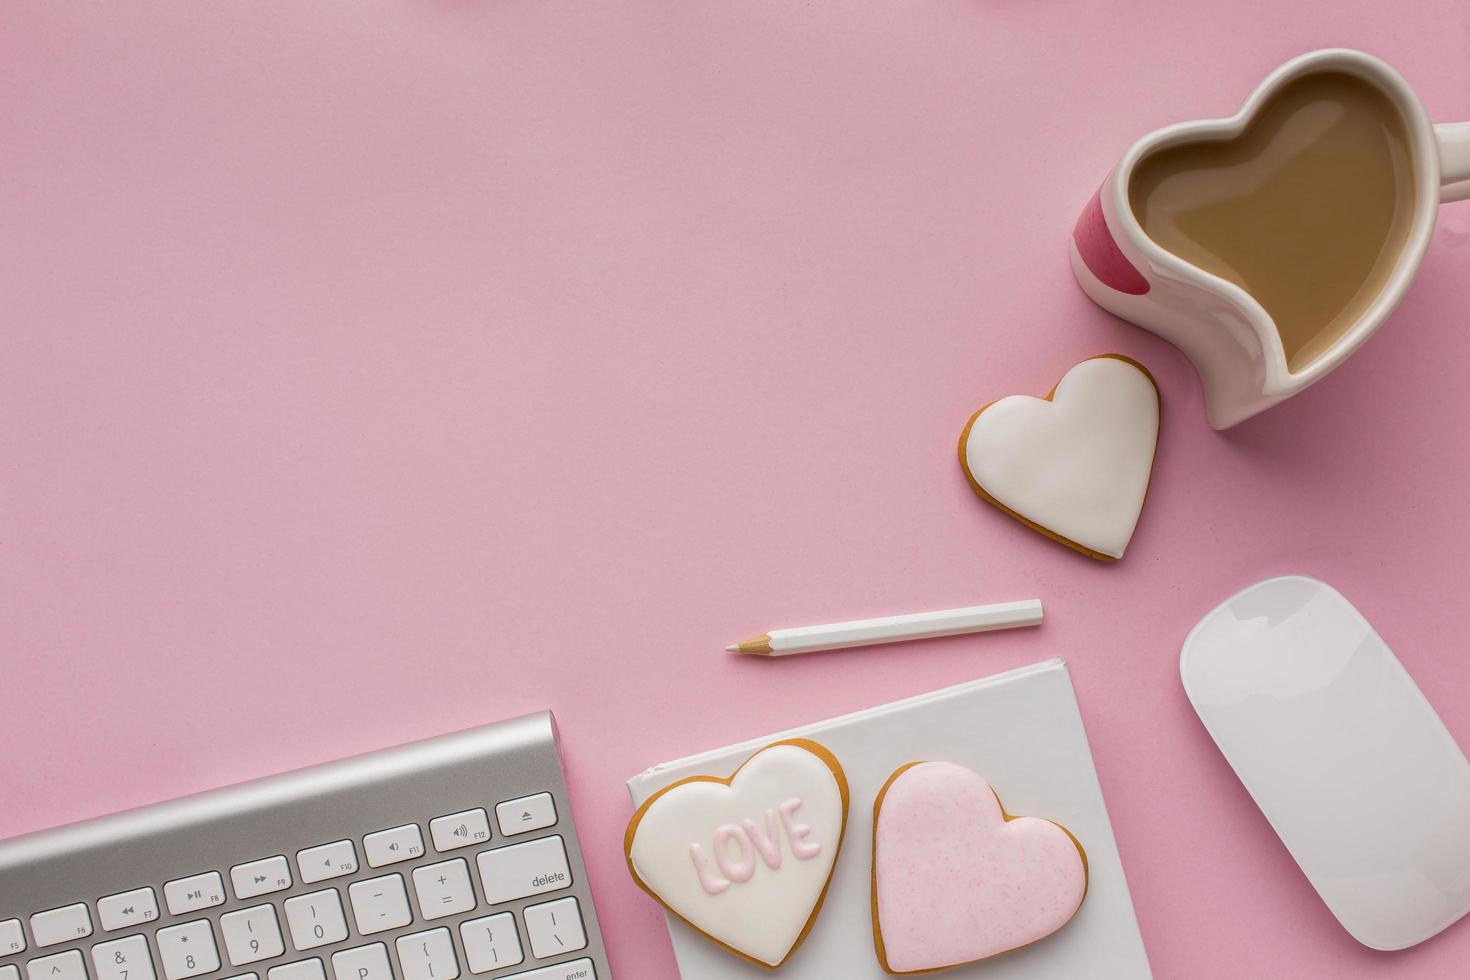 articles de la Saint-Valentin sur un bureau photo